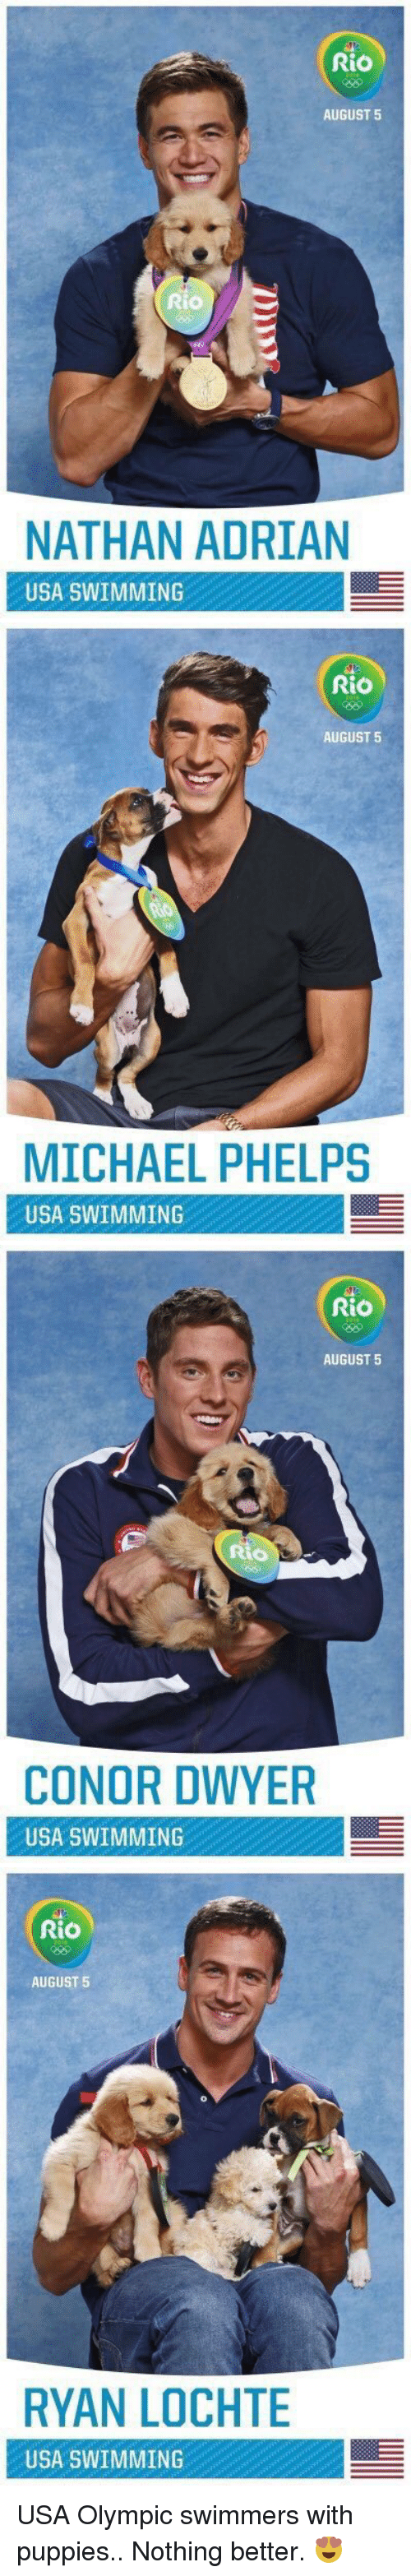 Puppies, Michael, and Michael Phelps: Rio  AUGUST 5  Rio  NATHAN ADRIAN  USA SWIMMING   Rio  AUGUST 5  MICHAEL PHELPS  USA SWIMMING   Rio  AUGUST 5  CONOR DWYER  USA SWIMMING   Rio  AUGUST 5  RYAN LOCHTE  USA SWIMMING USA Olympic swimmers with puppies.. Nothing better. 😍